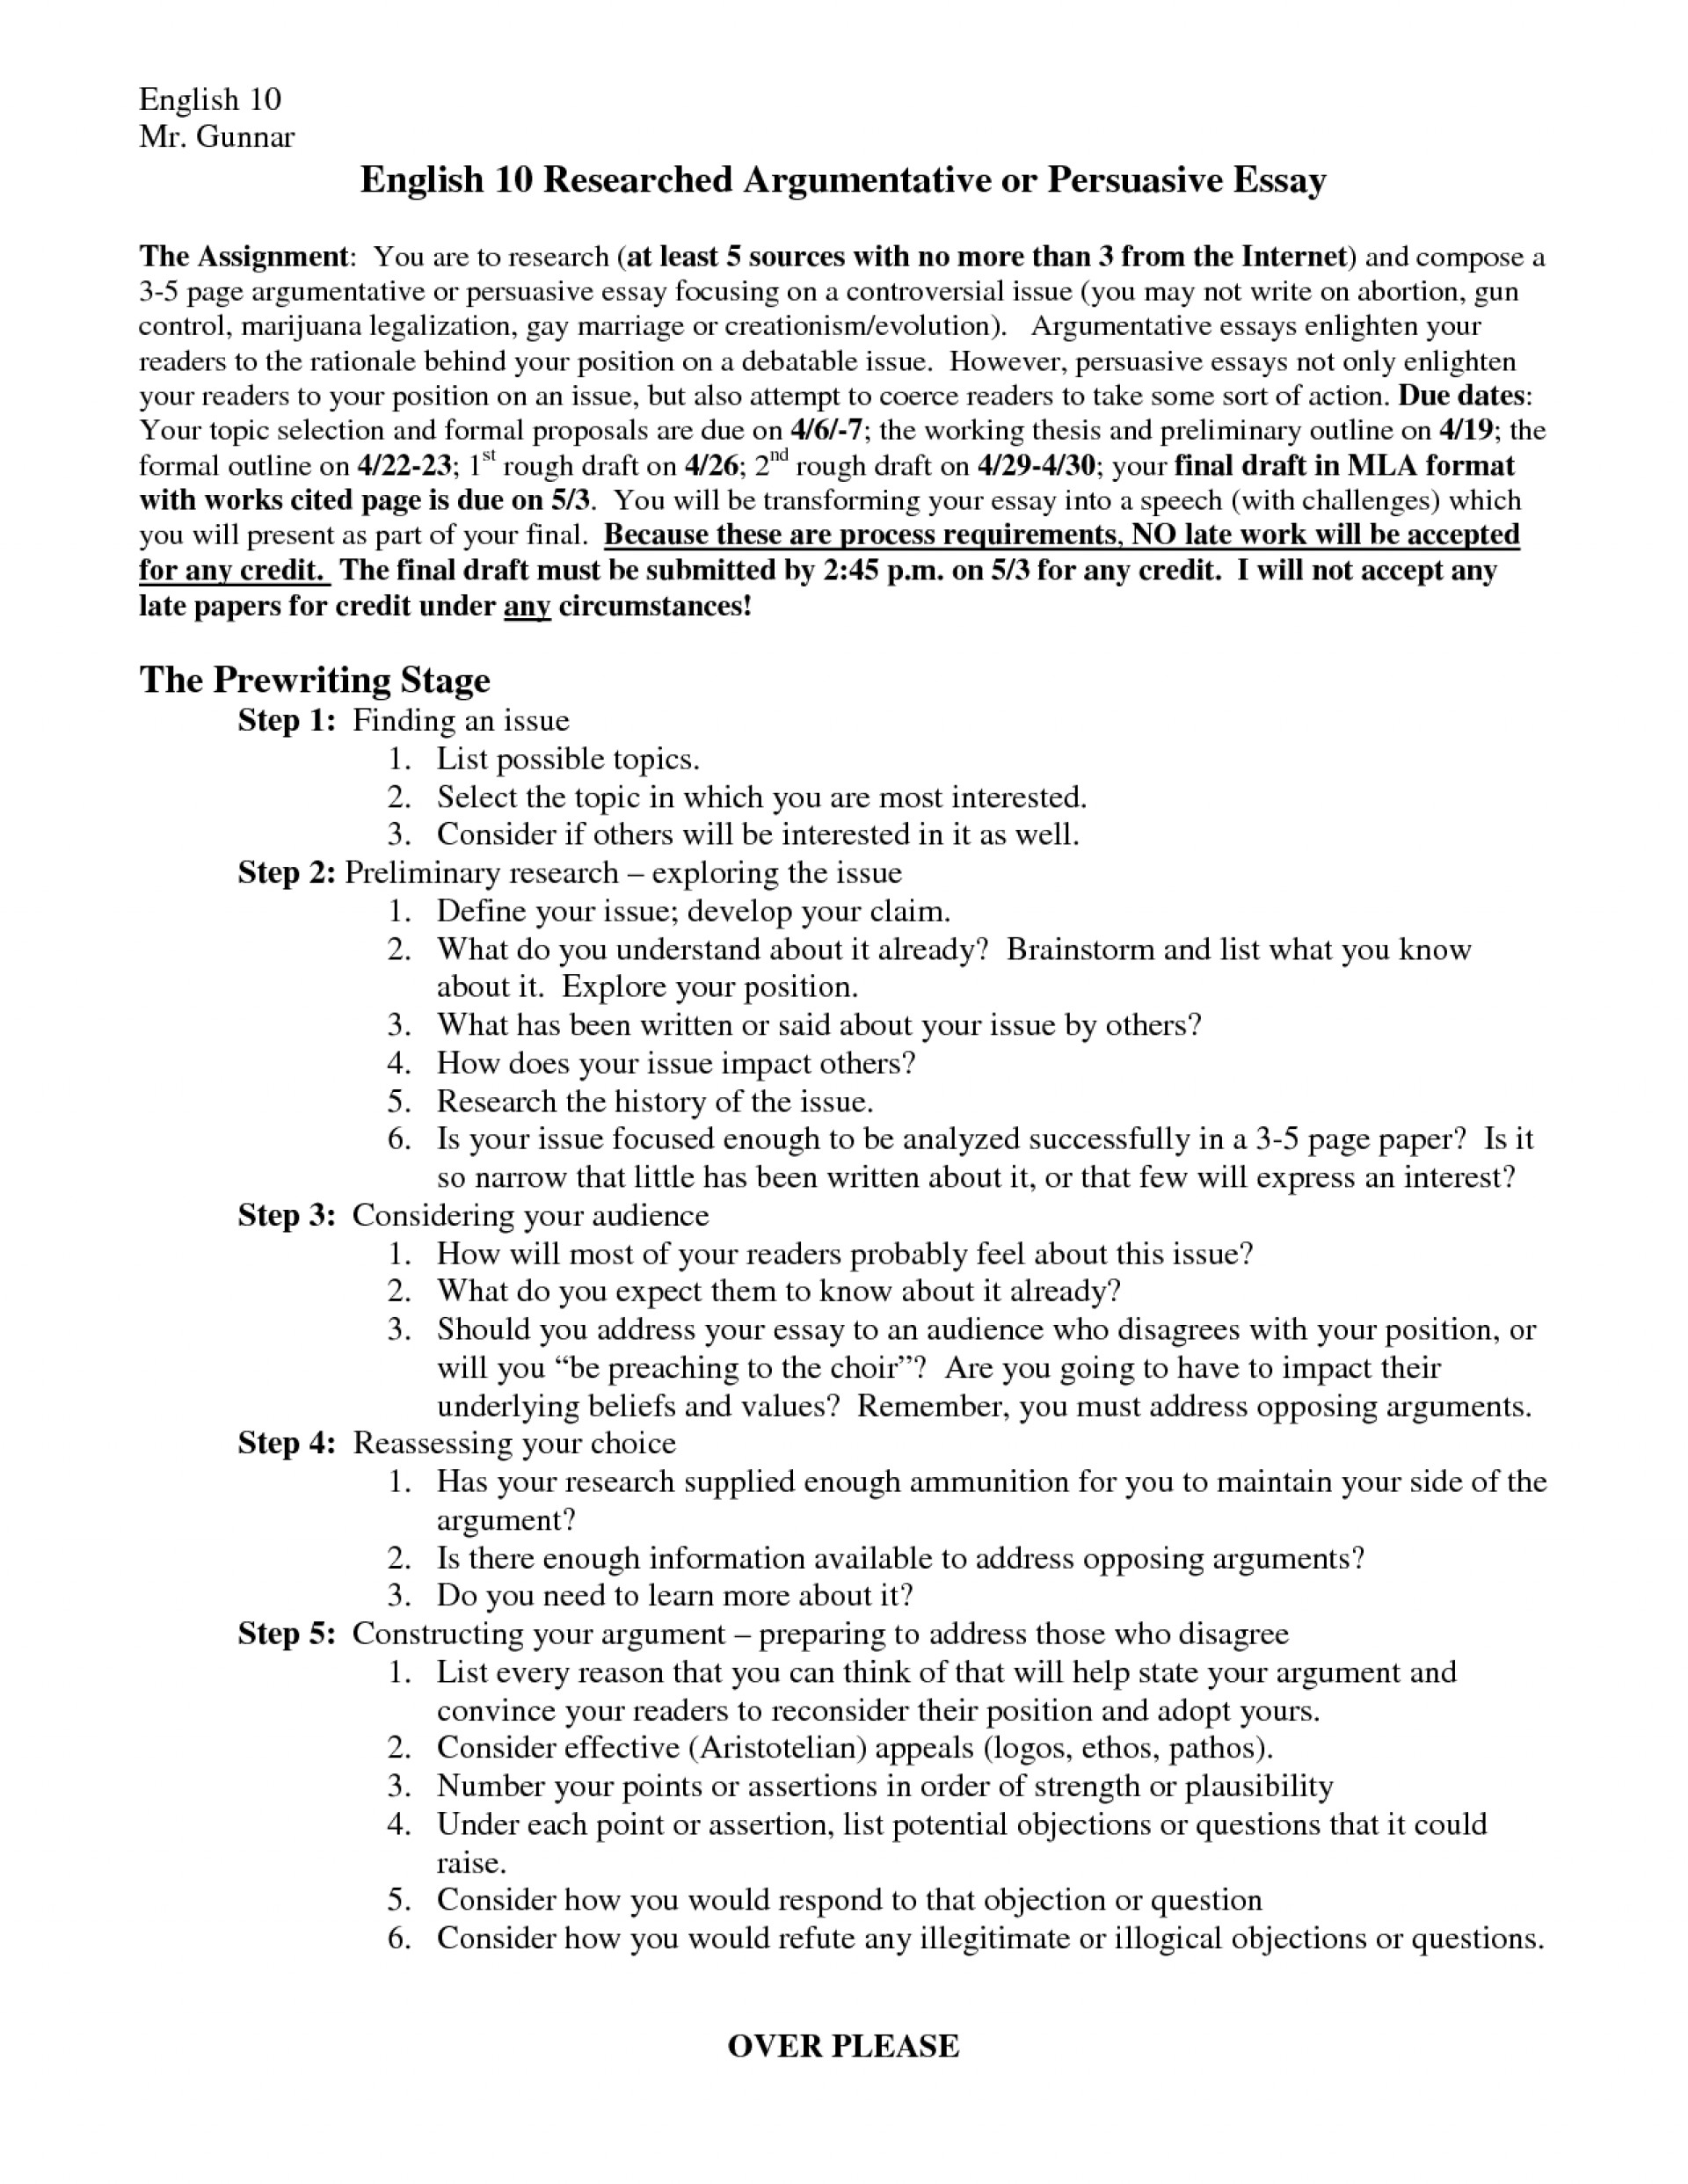 008 Research Paper Mla Format Argumentative Essay Outline 472291 Abortion Formidable Example Sample Of Topic For How To Term A 1920